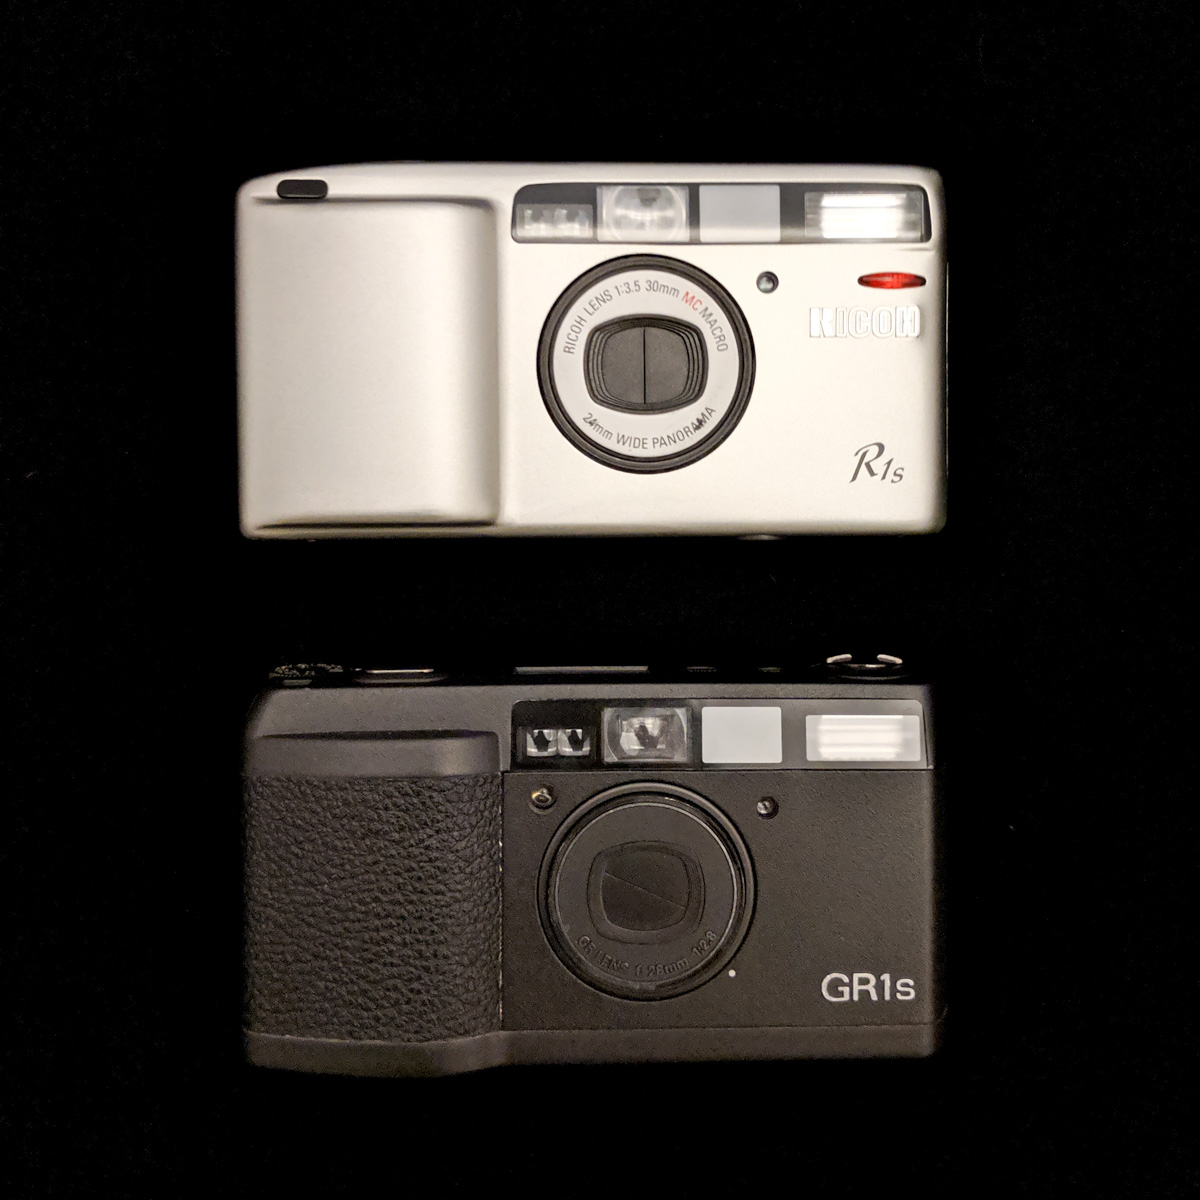 Ricoh GR1s and R1s - front